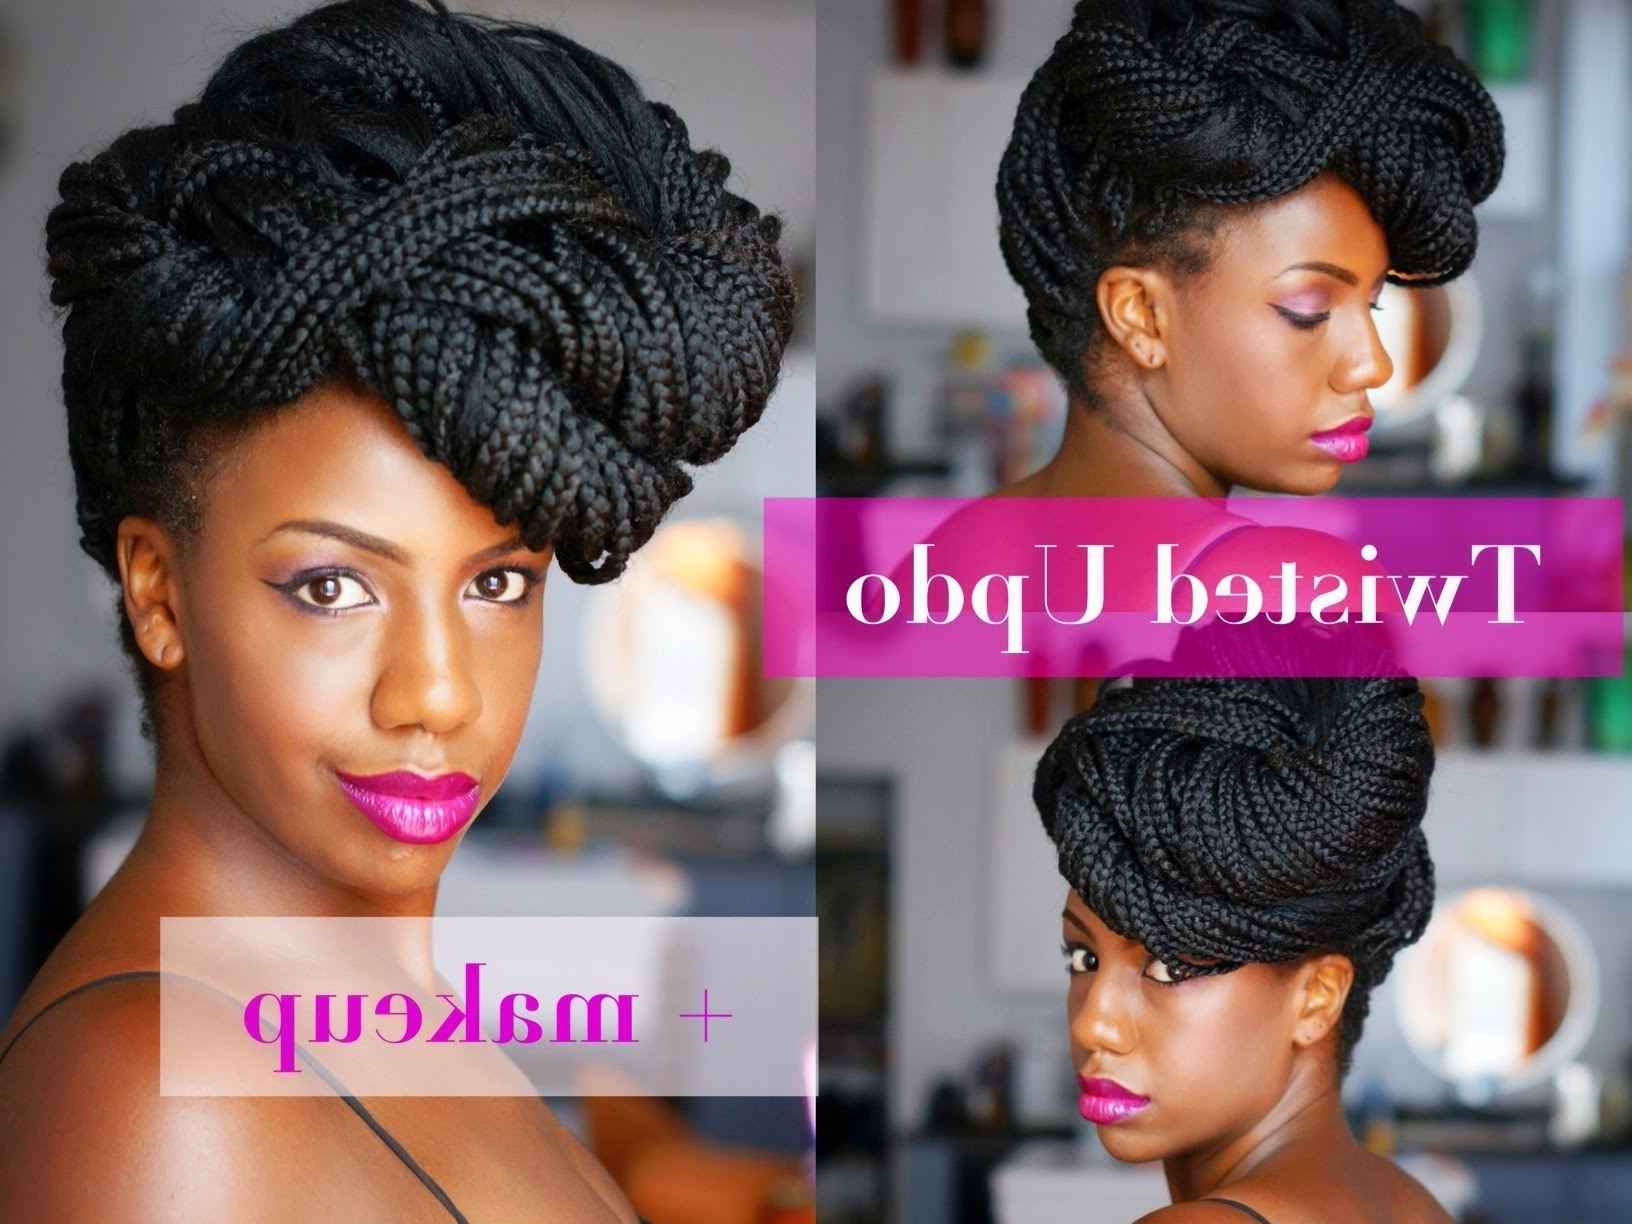 Twisted Updo For Havana Twists, Marley Twists, Senegalese Twists Pertaining To Braids And Twist Updo Hairstyles (View 9 of 15)